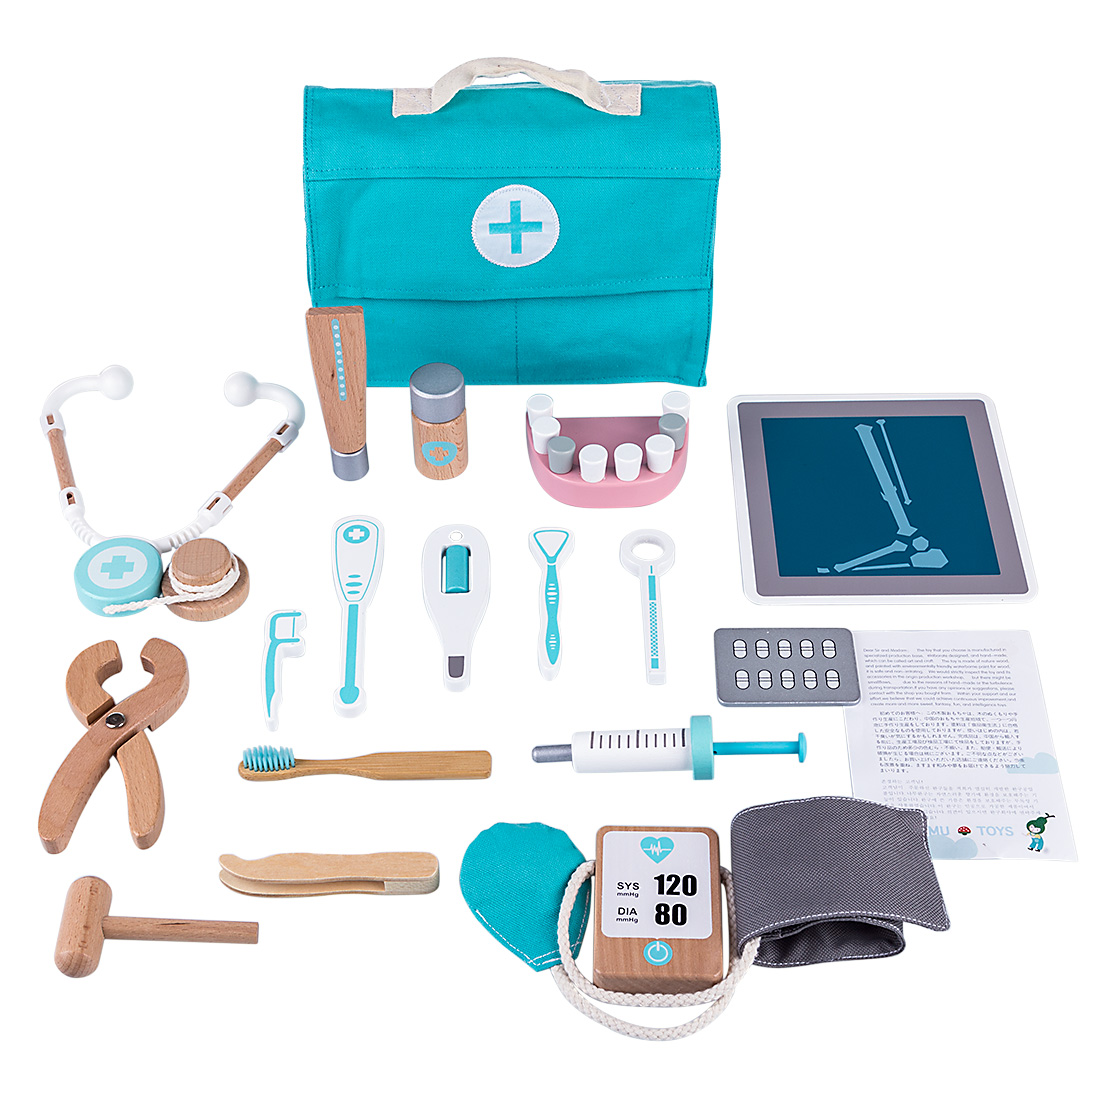 NFSTRIKE 18Pcs Children Wooden Pretend Dentist Toolbox Doctor Medical Playset With Stethoscope Kids Birthdaty Gifts 2020